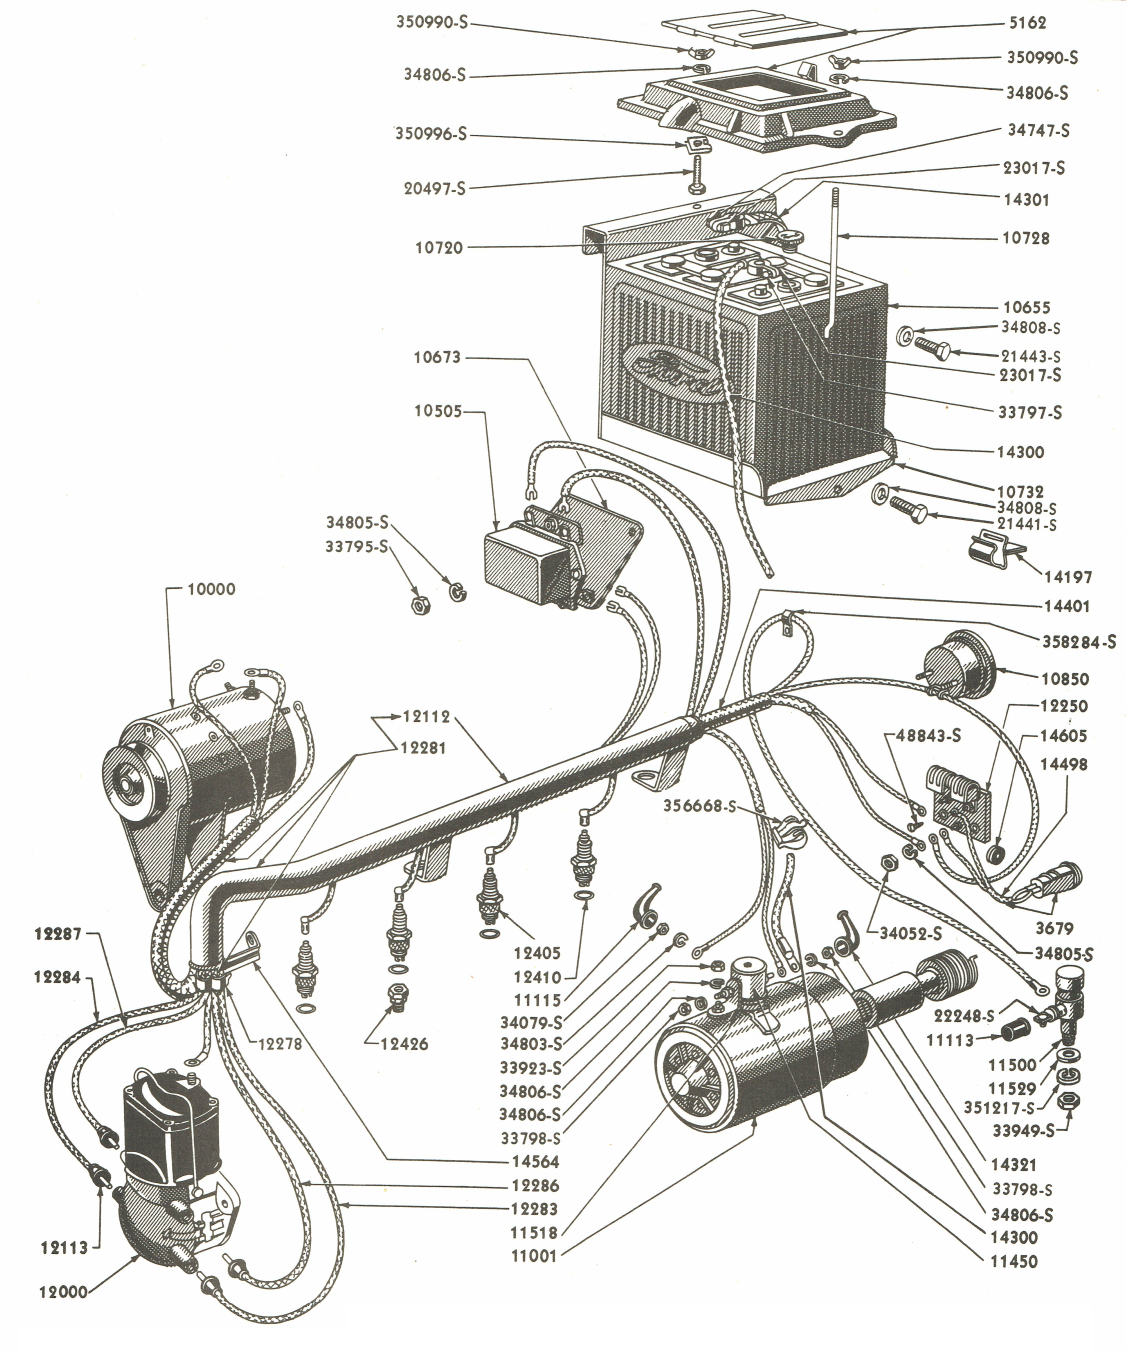 Diagram] 1957 Ford 800 Tractor Wiring Diagram Full Version